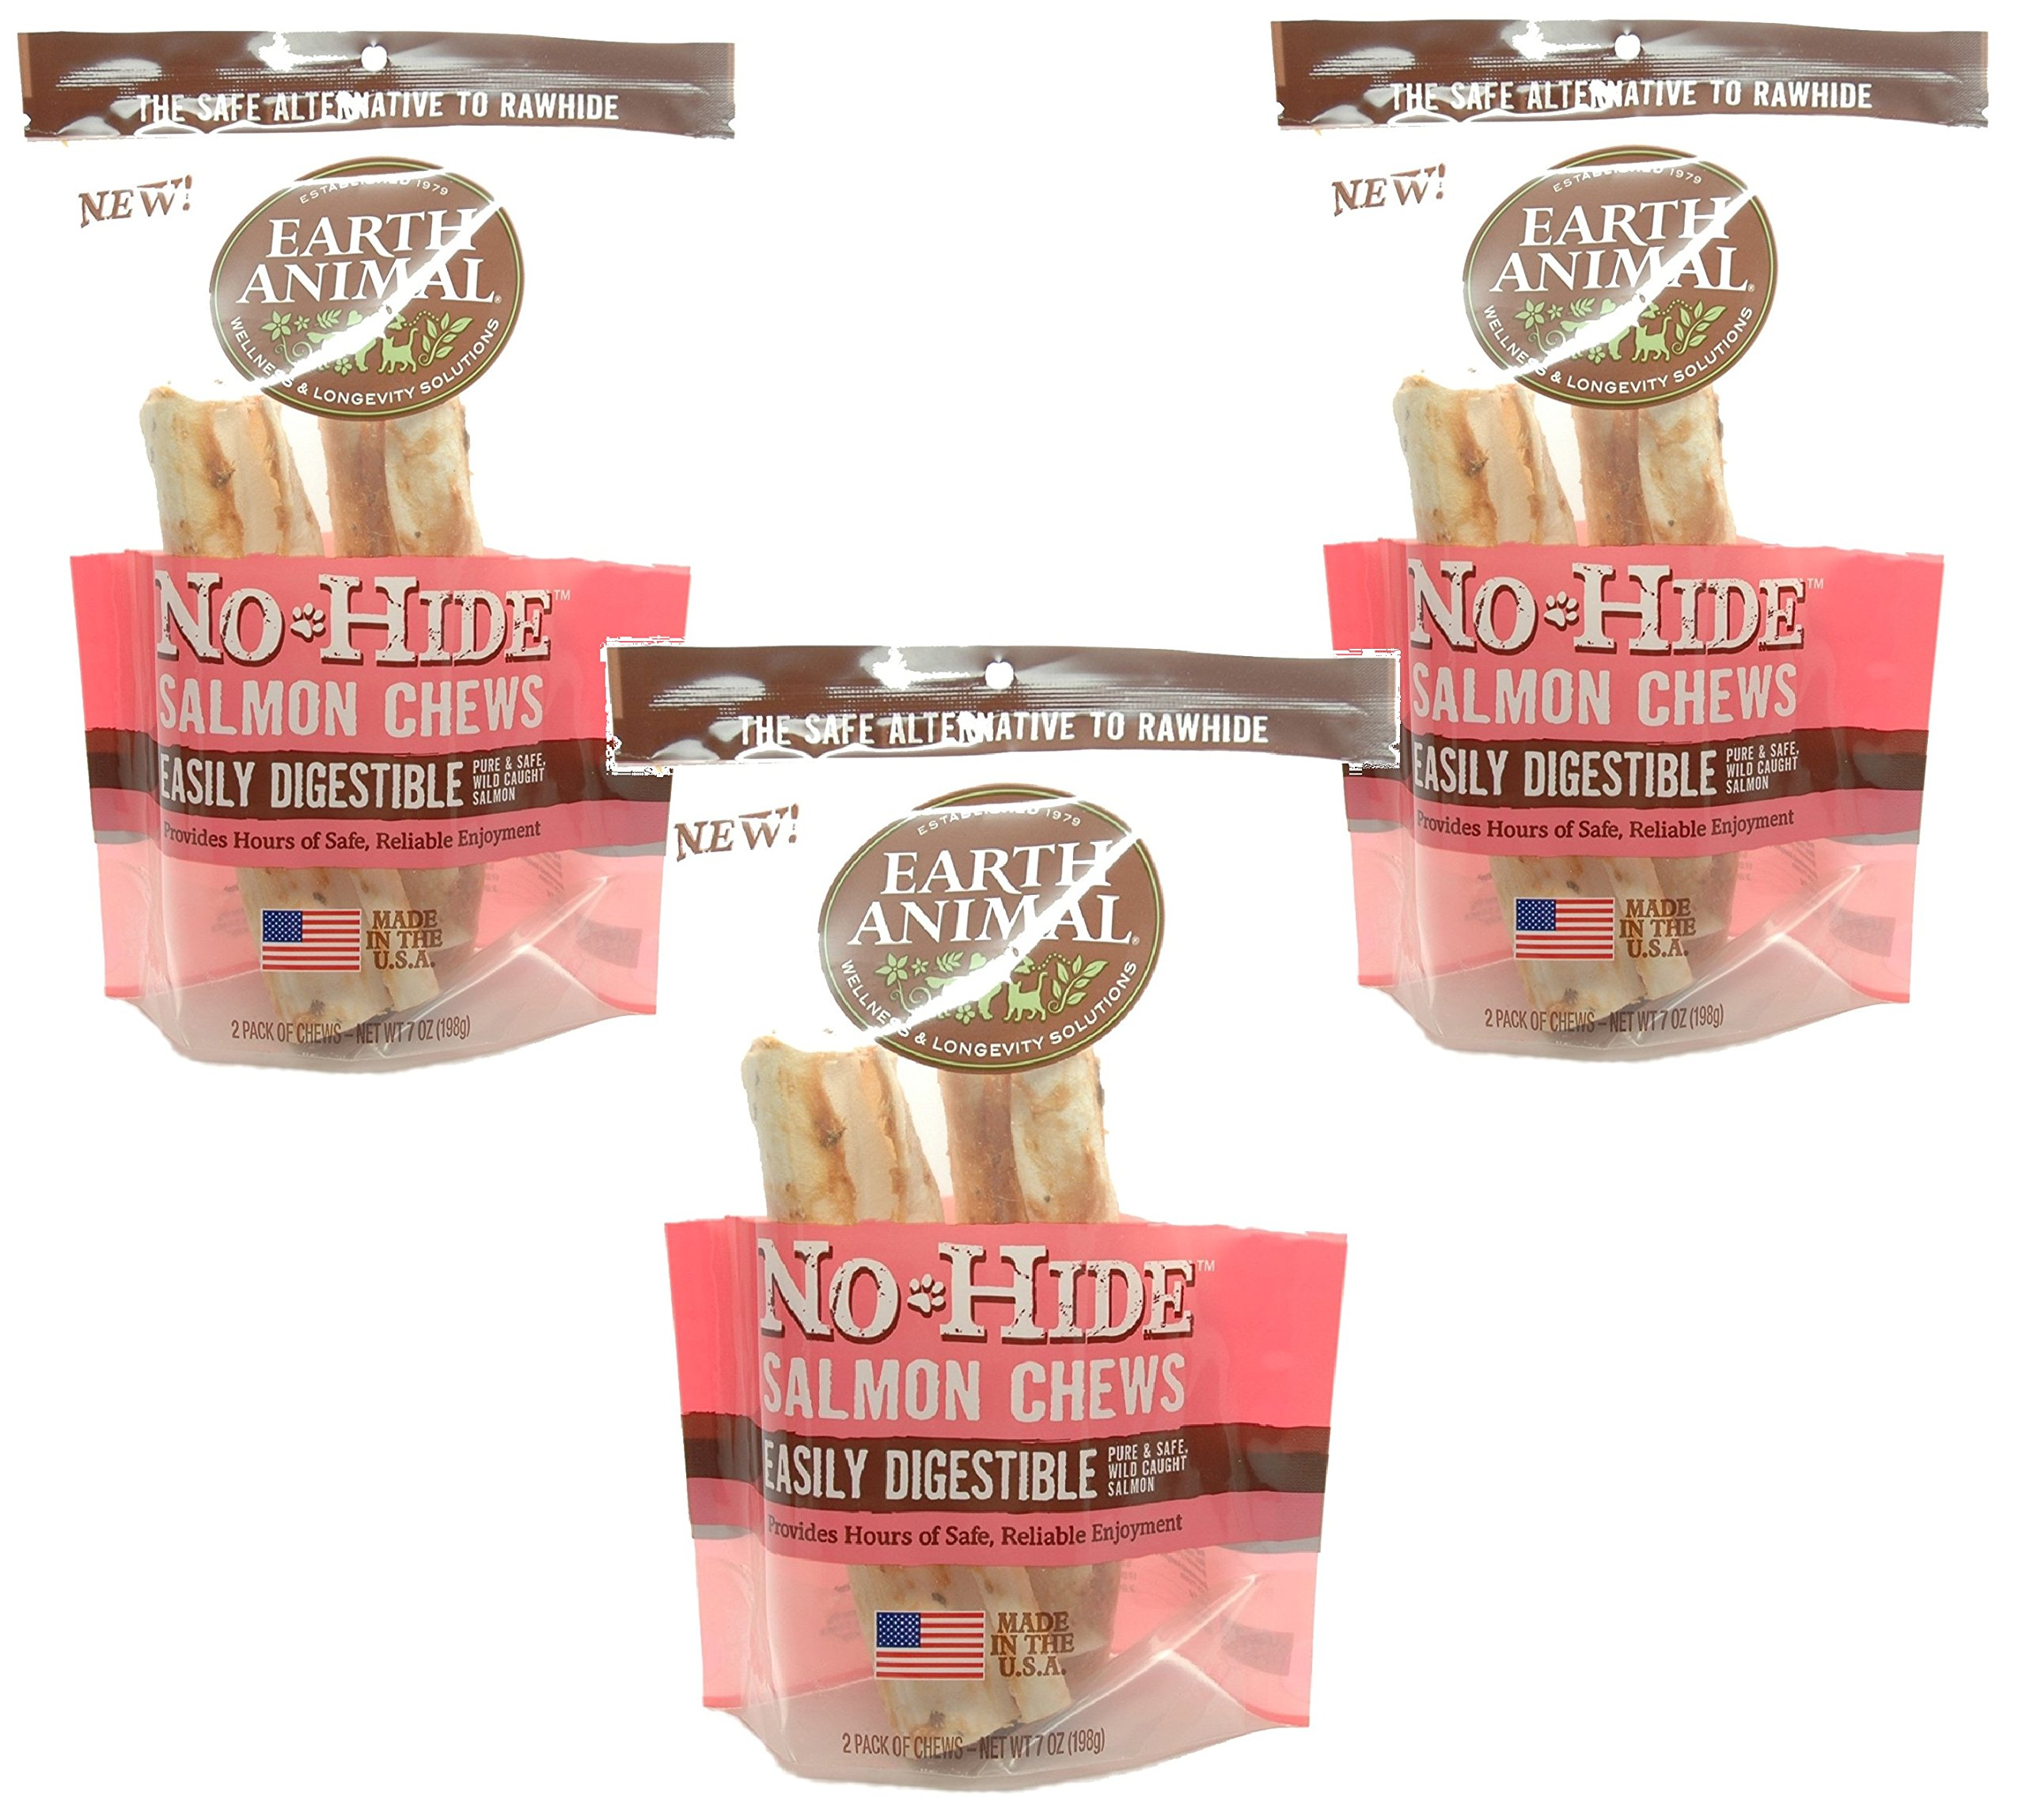 "6-Count Earth Animal No-Hide Salmon Chews 7"" (3 Packages with 2 Chews Each) 1"